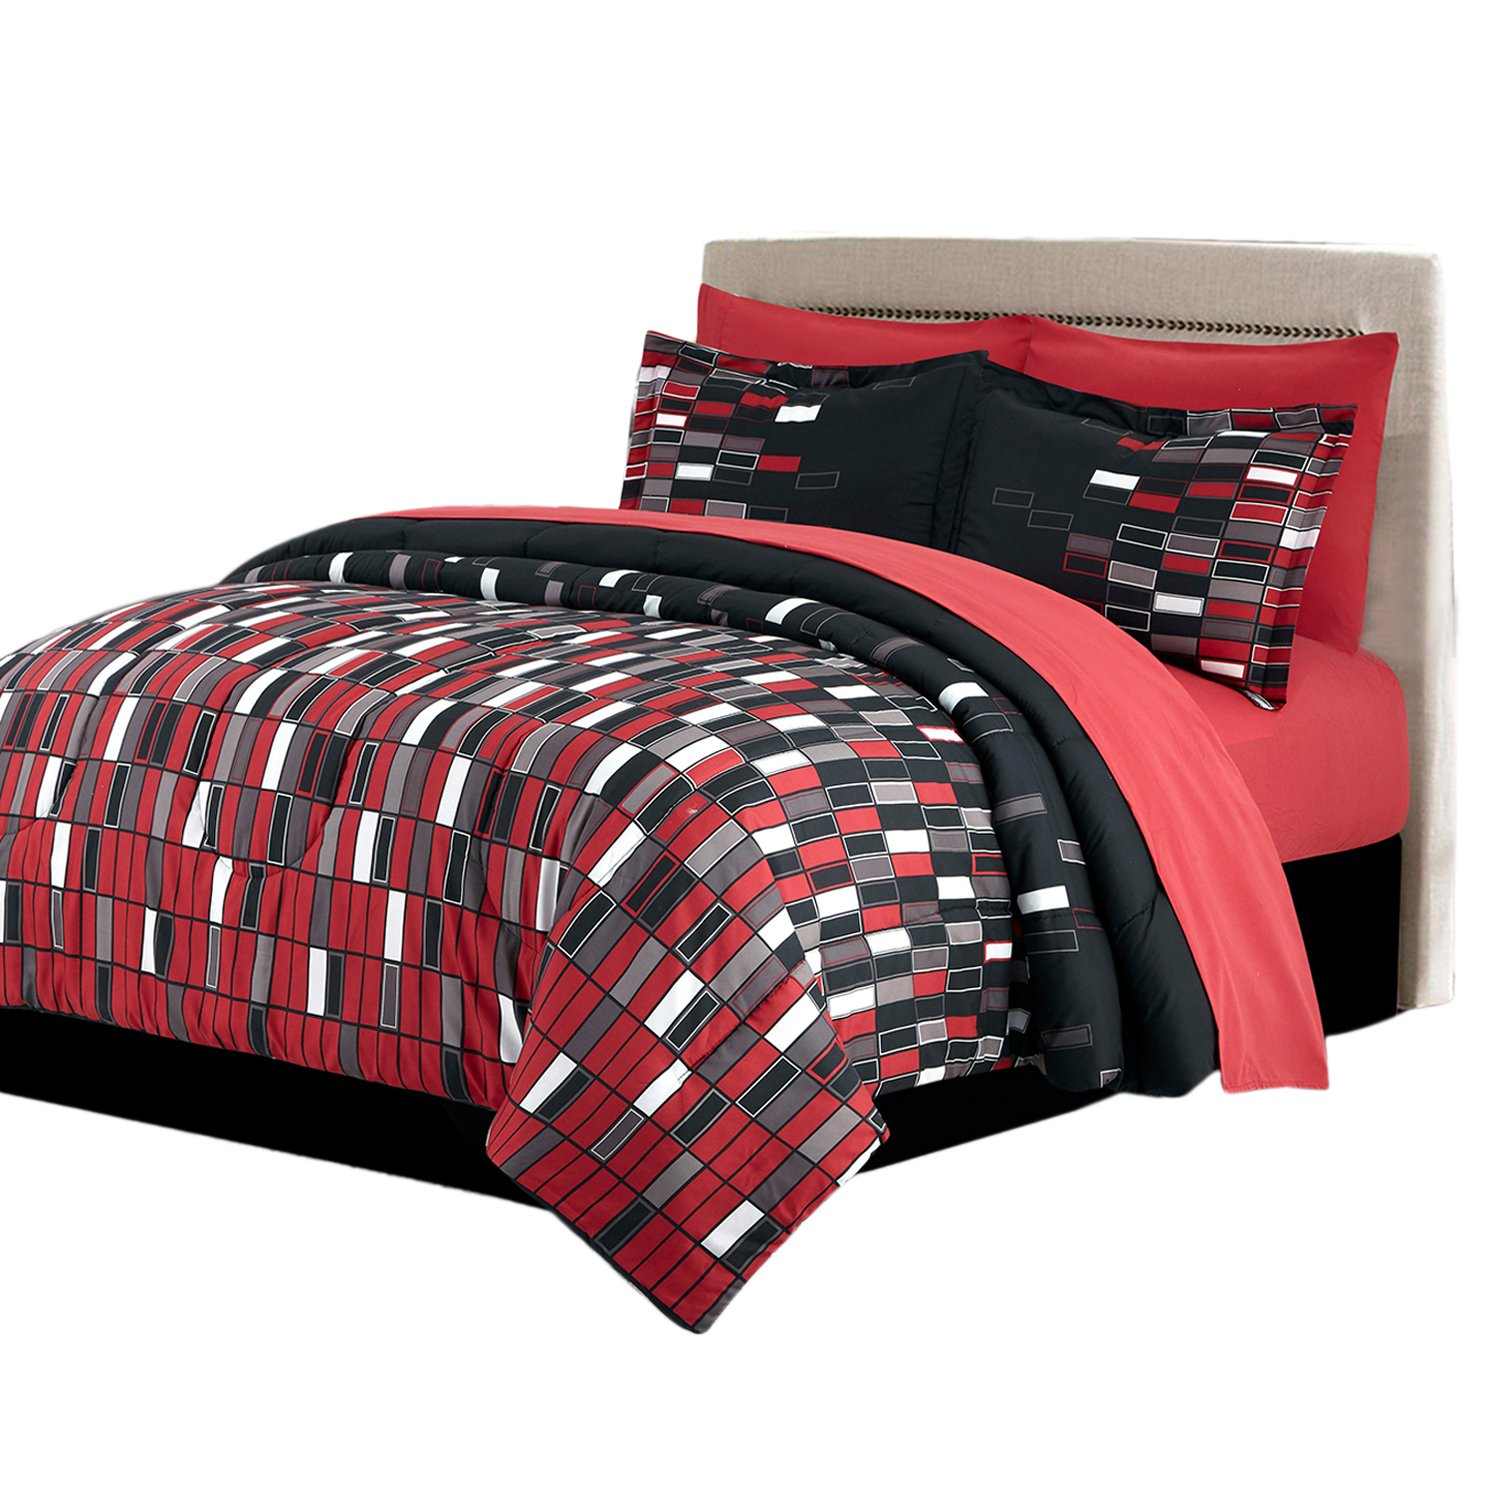 HollyHOME Red Check 6-Piece Bed in Bag Comforter Set, Twin